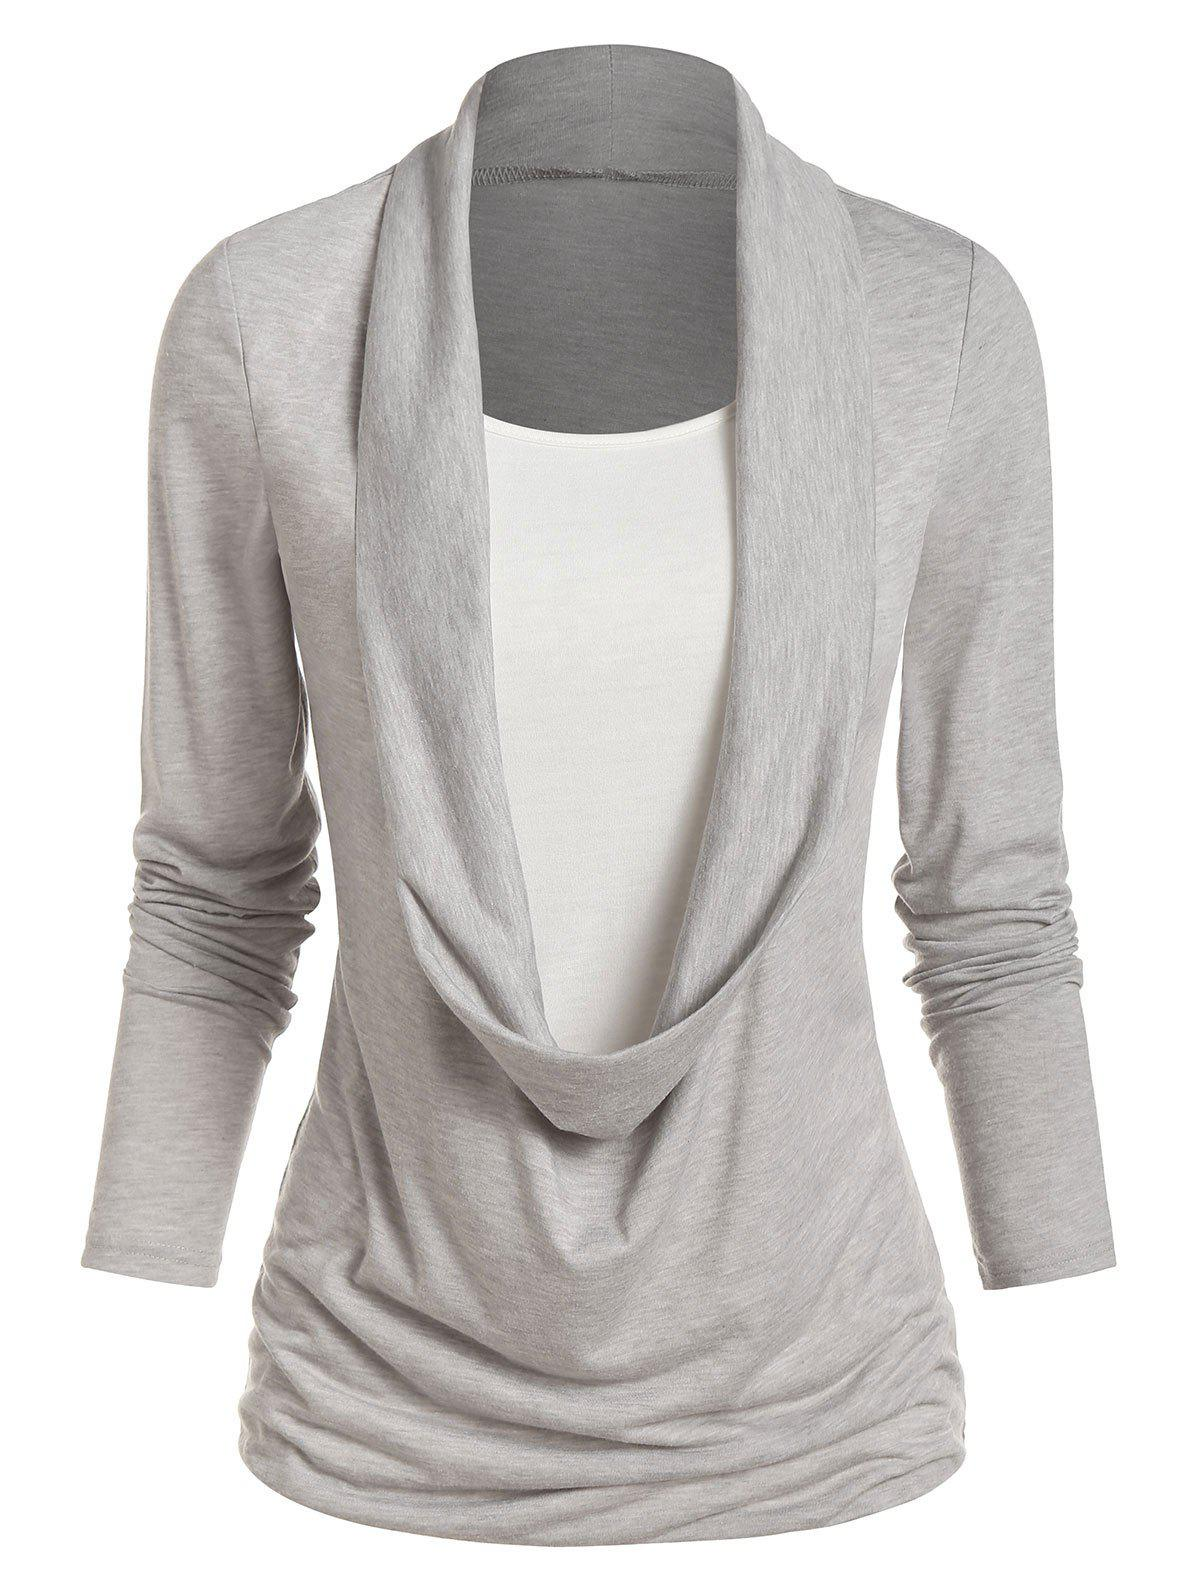 Long Sleeve Heathered Faux Twinset Casual T-shirt - GRAY GOOSE M